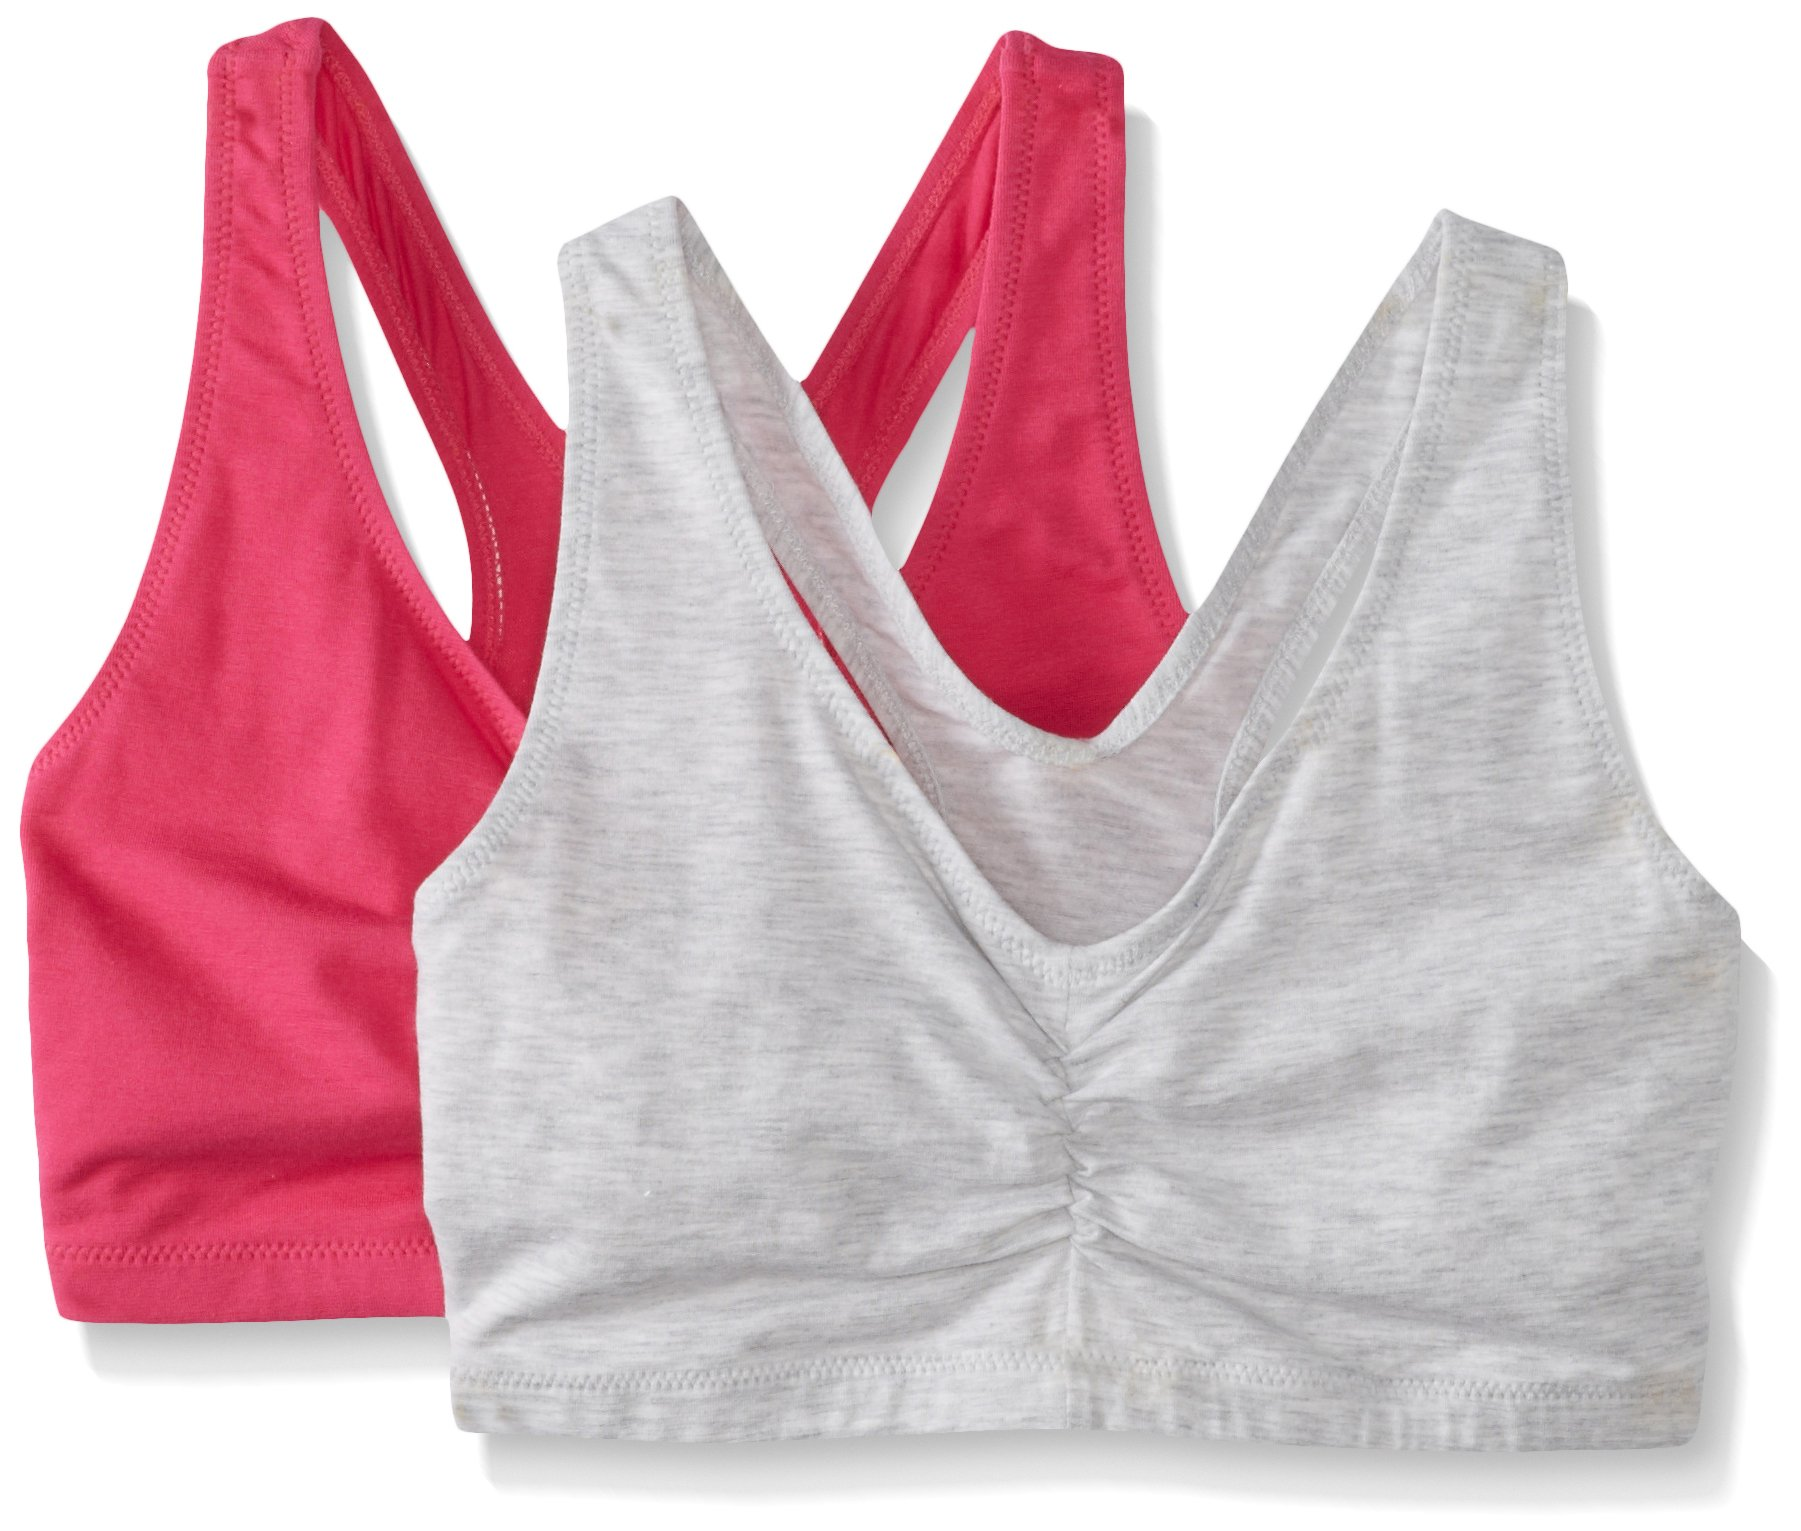 Hanes Women's Comfort-Blend Flex Fit Pullover Bra (Pack of 2),Heather Grey/Fuchsia Purple,Small